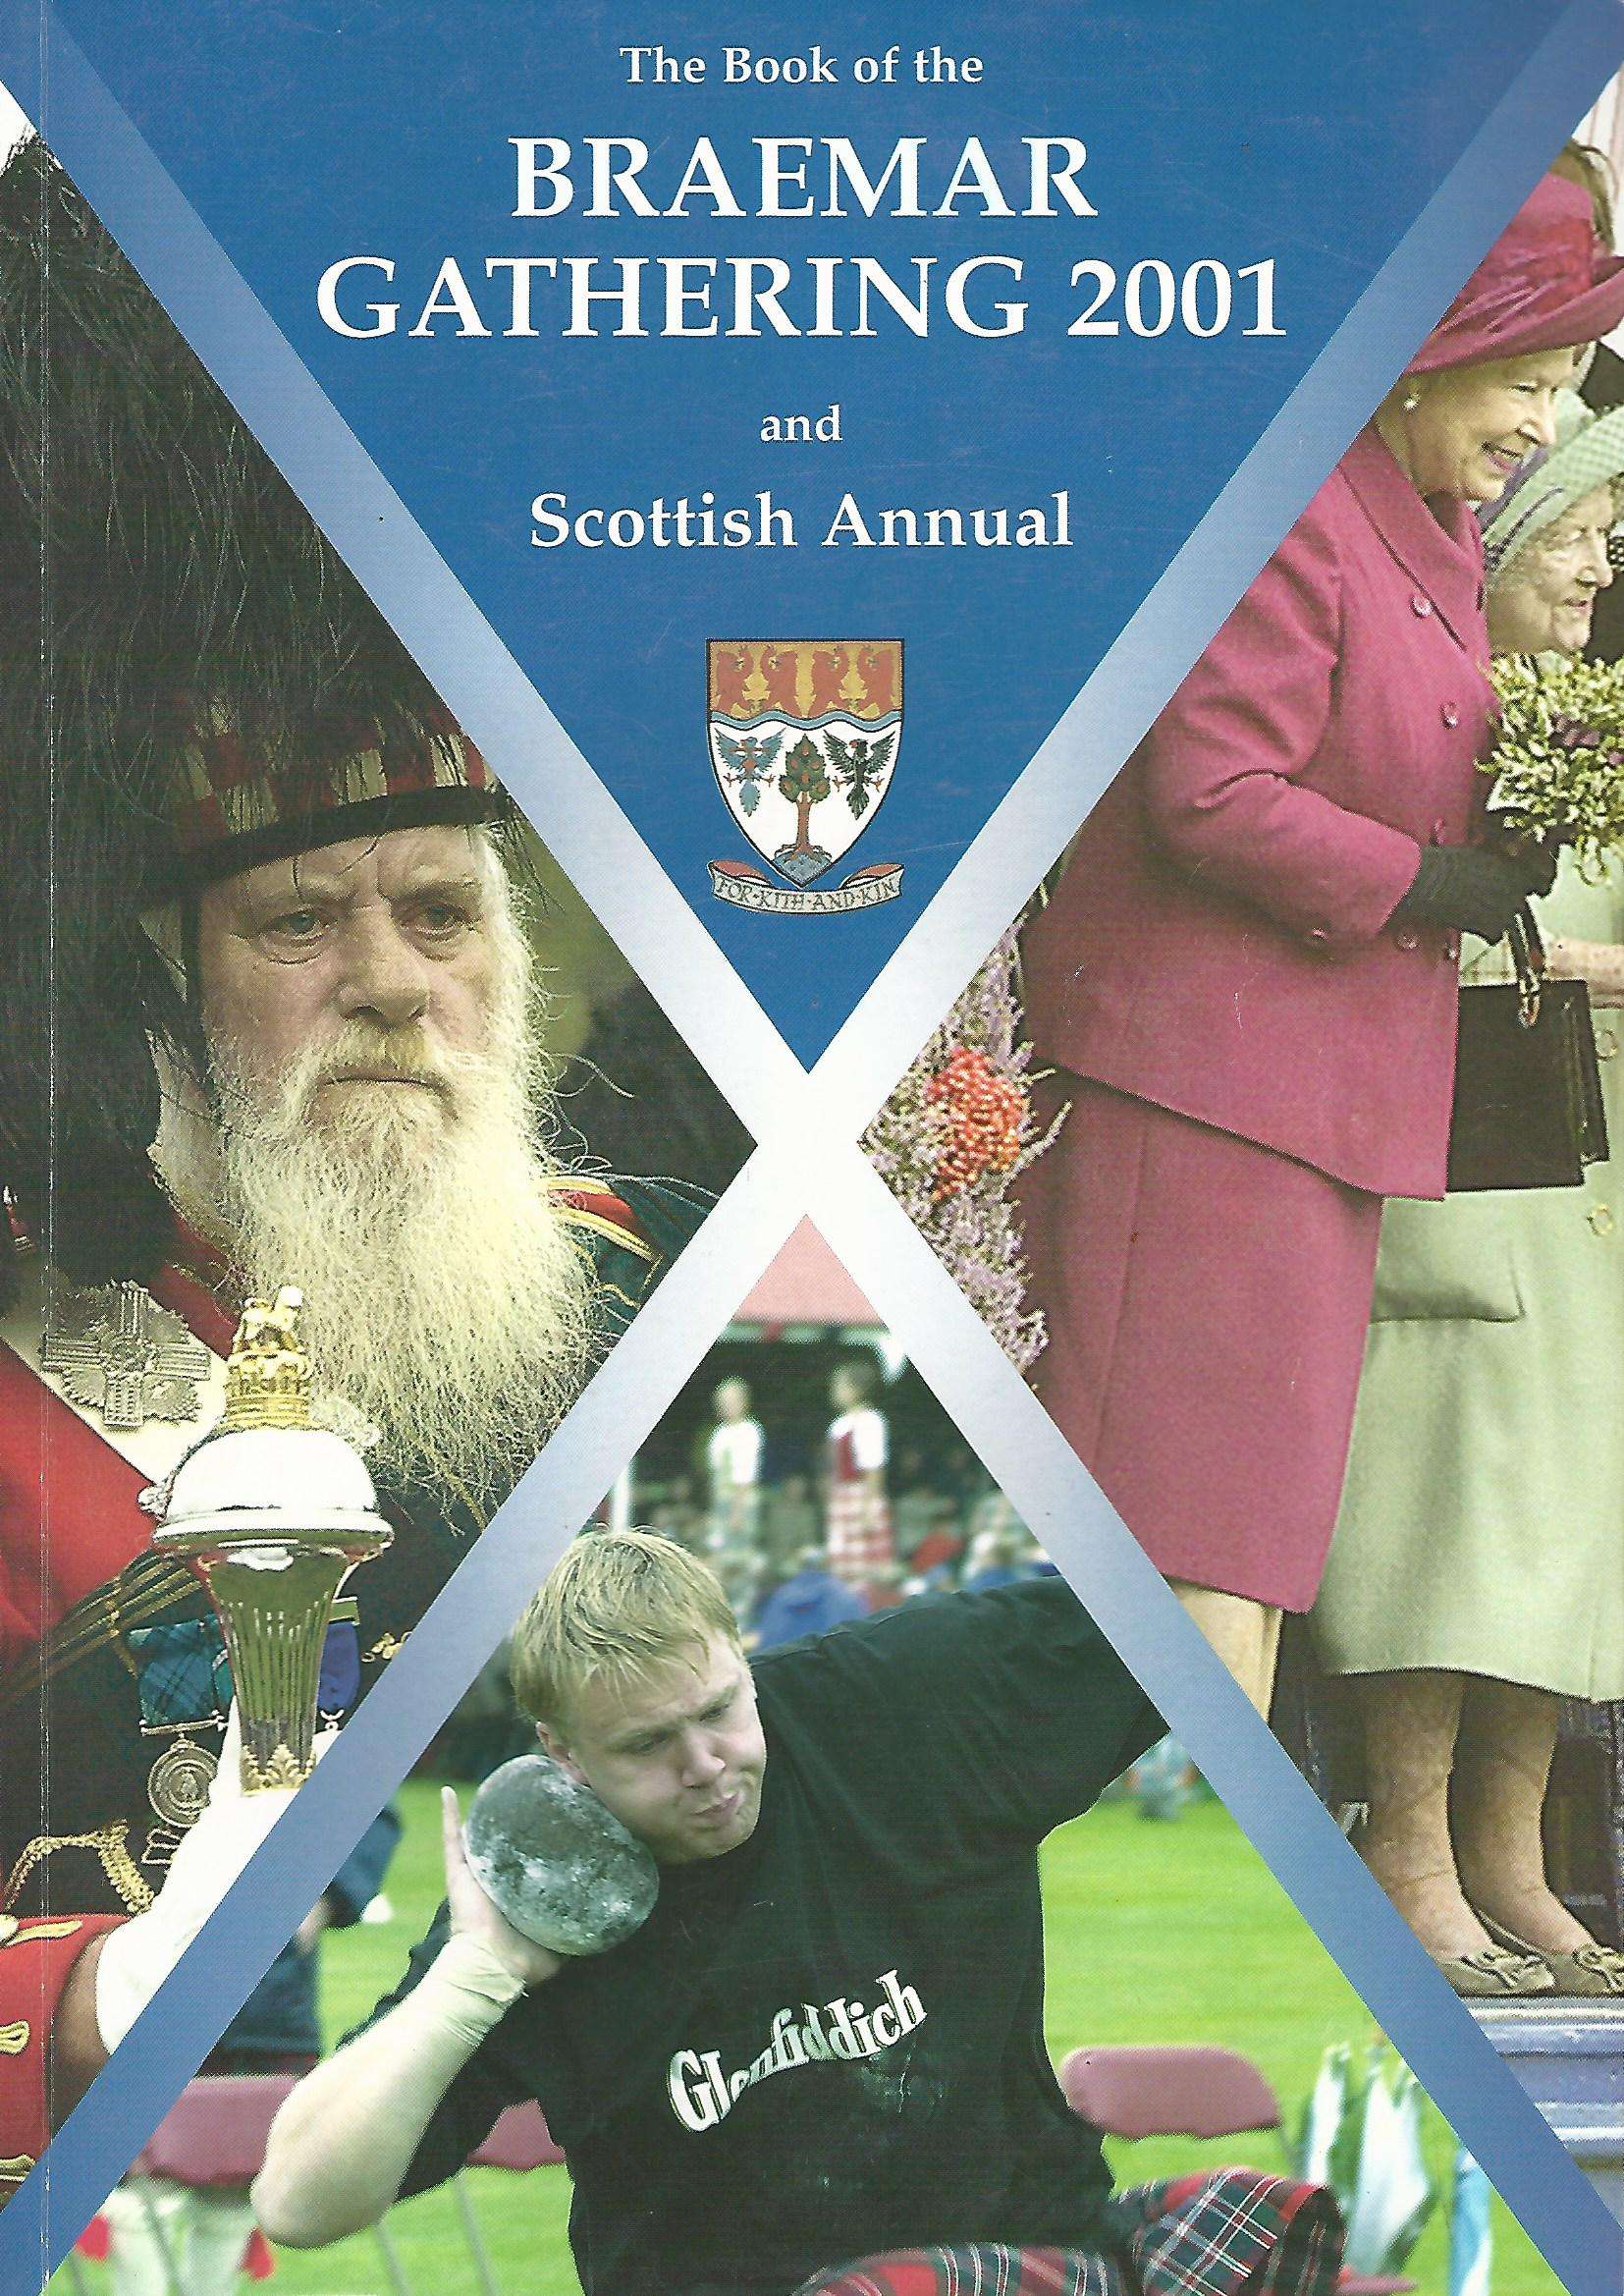 Image for The Book of the Braemar Gathering and Scottish Annual, 2001.